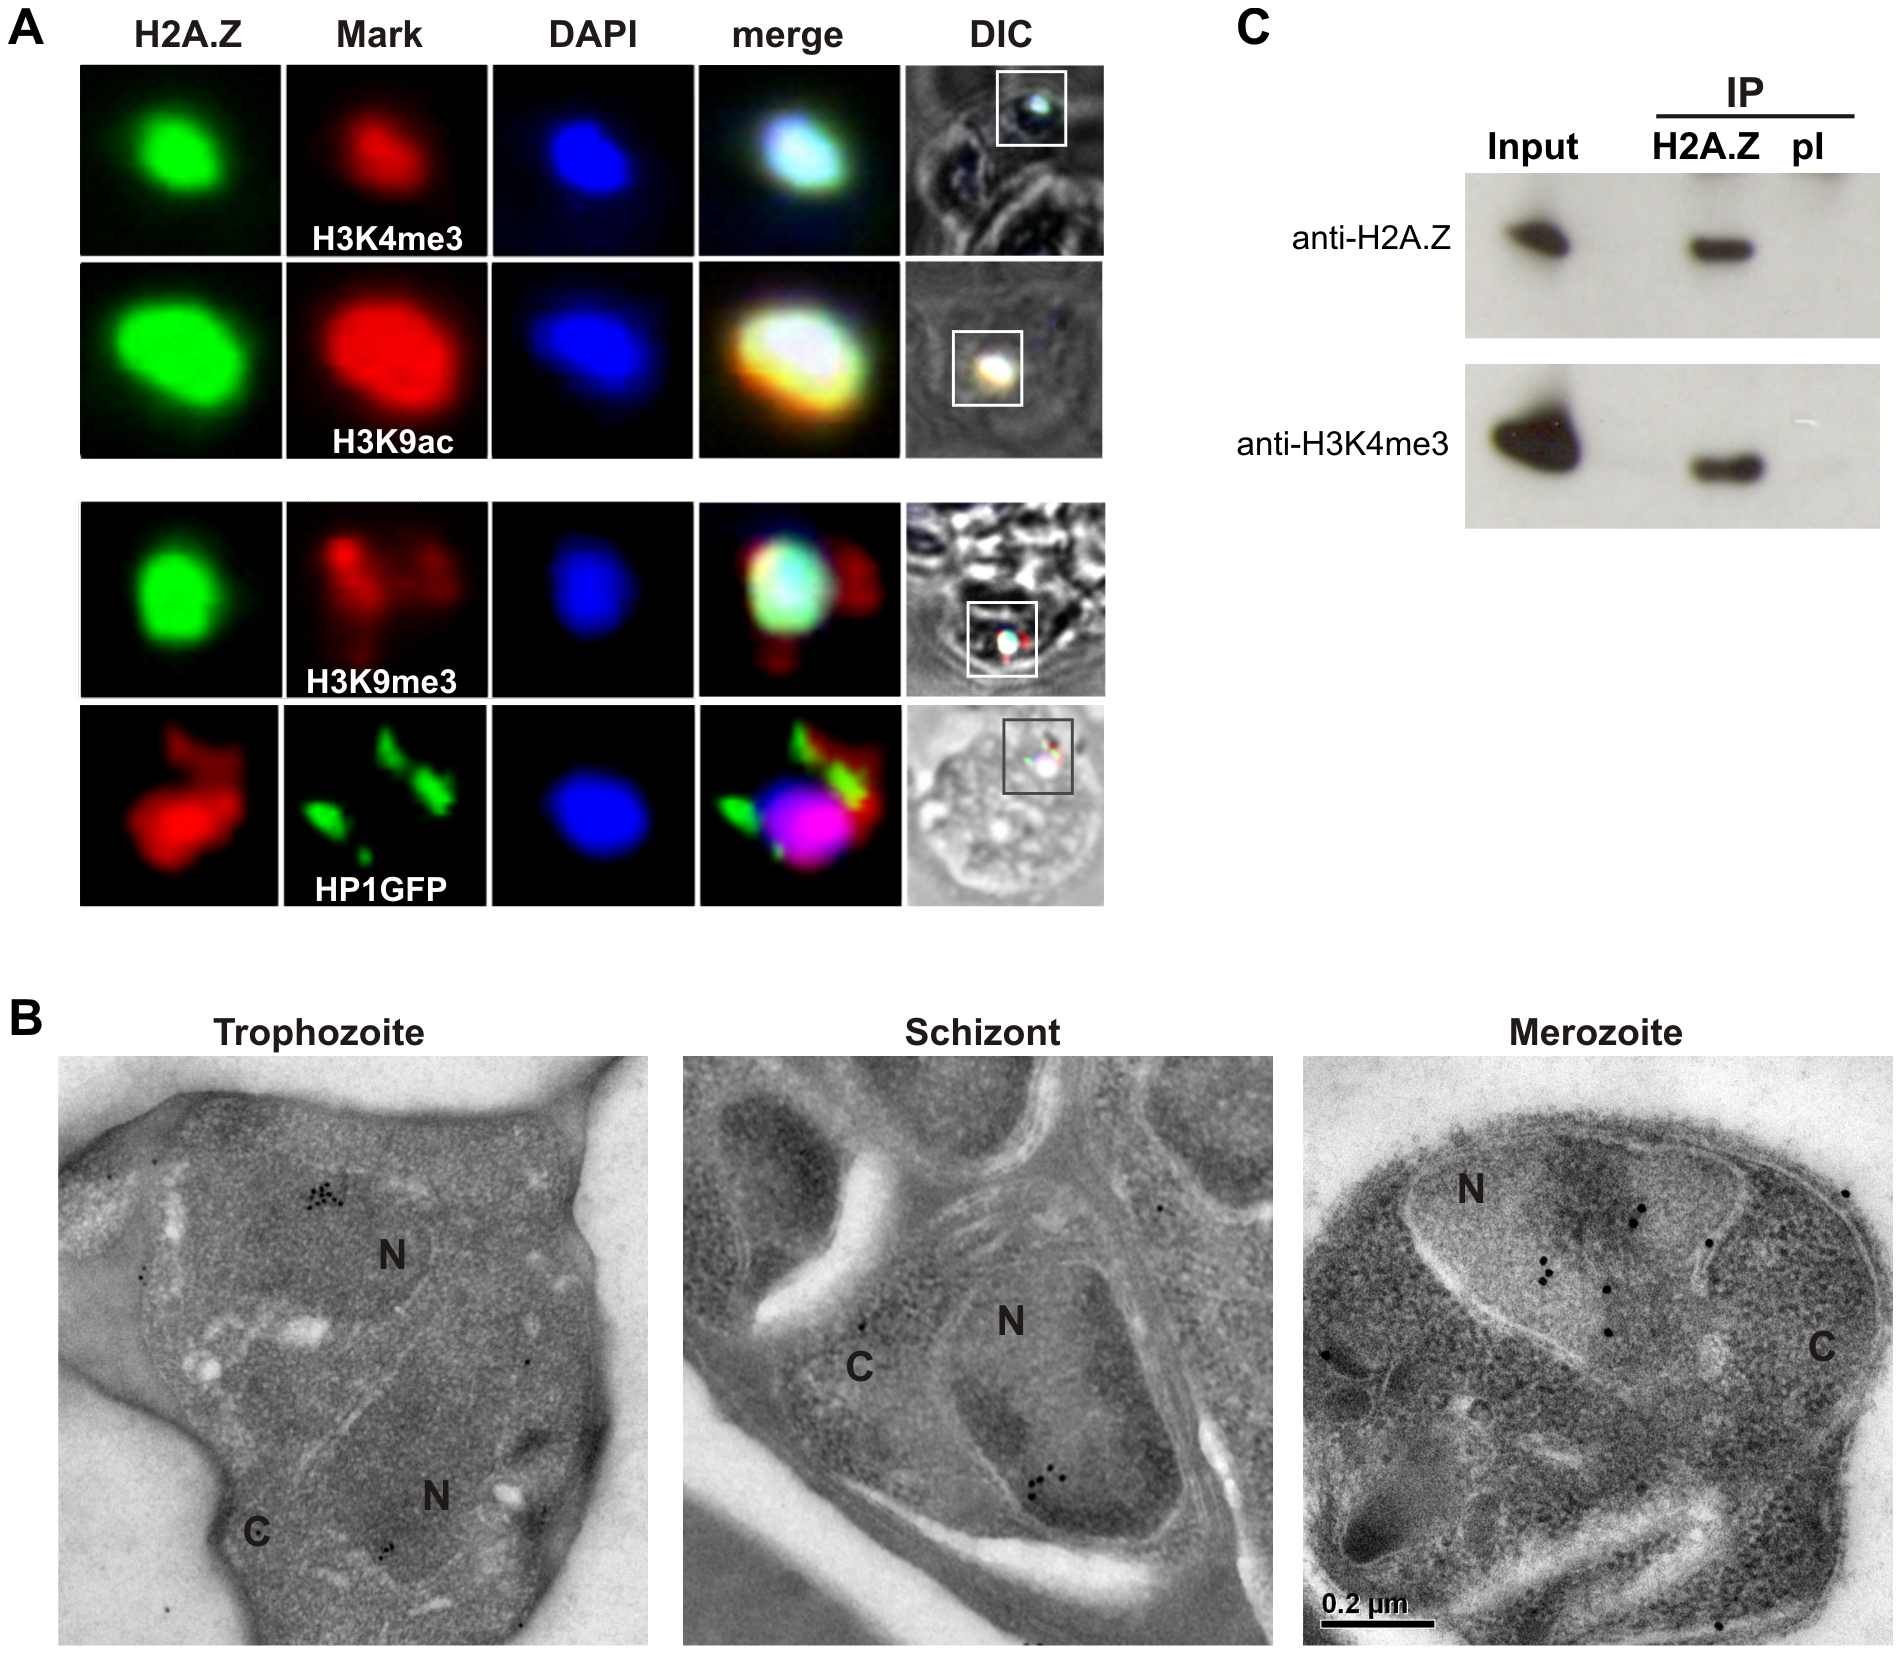 PfH2A.Z is present in the euchromatin compartment.